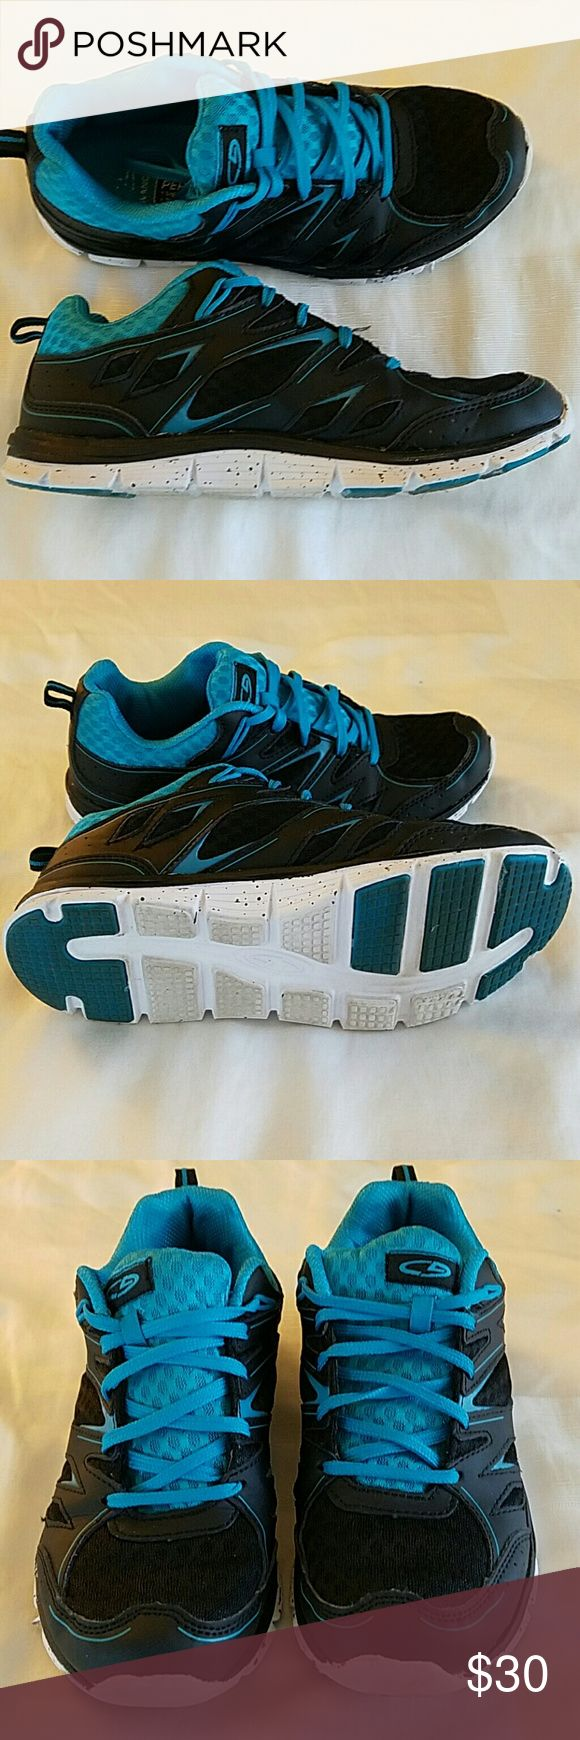 Champion shoes size 7.5 Blue and black running shoe. Lightweight cushion performance. Hardly worn. Champion Shoes Athletic Shoes